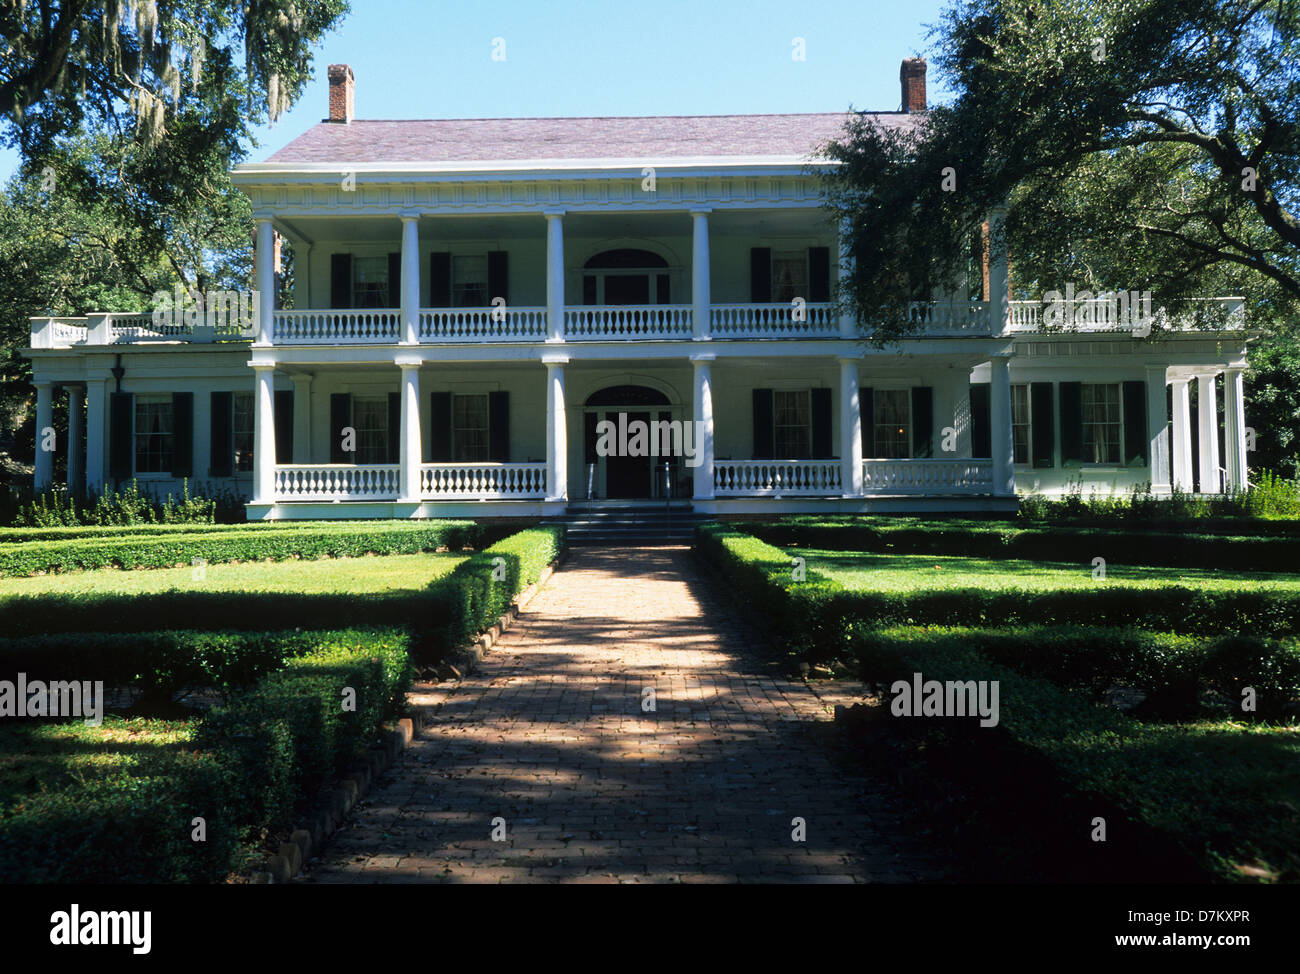 Elk283-2986 Louisiana, St Francisville, Rosedown Plantation State Historic Site, Mansion, 1836 - Stock Image